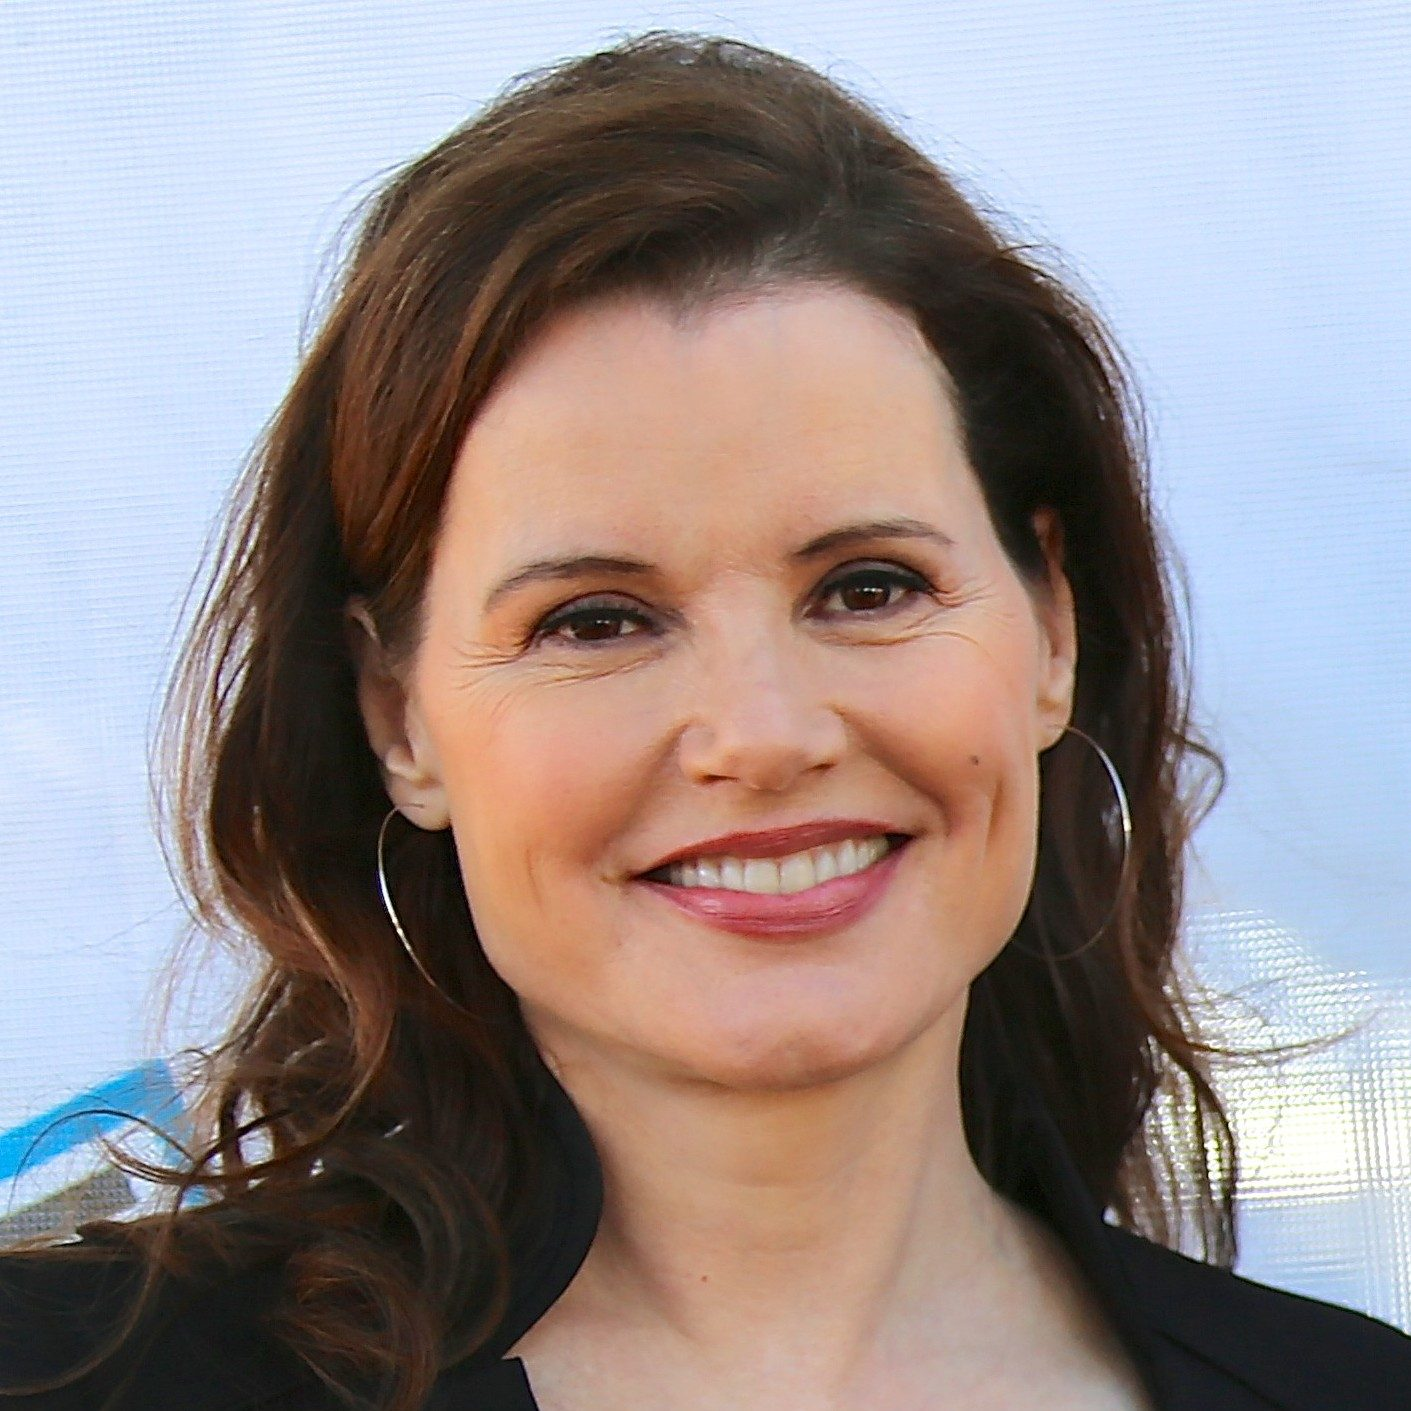 Geena Davis 2013 cropped e1603451952100 20 Things You Might Not Have Realised About Thelma & Louise